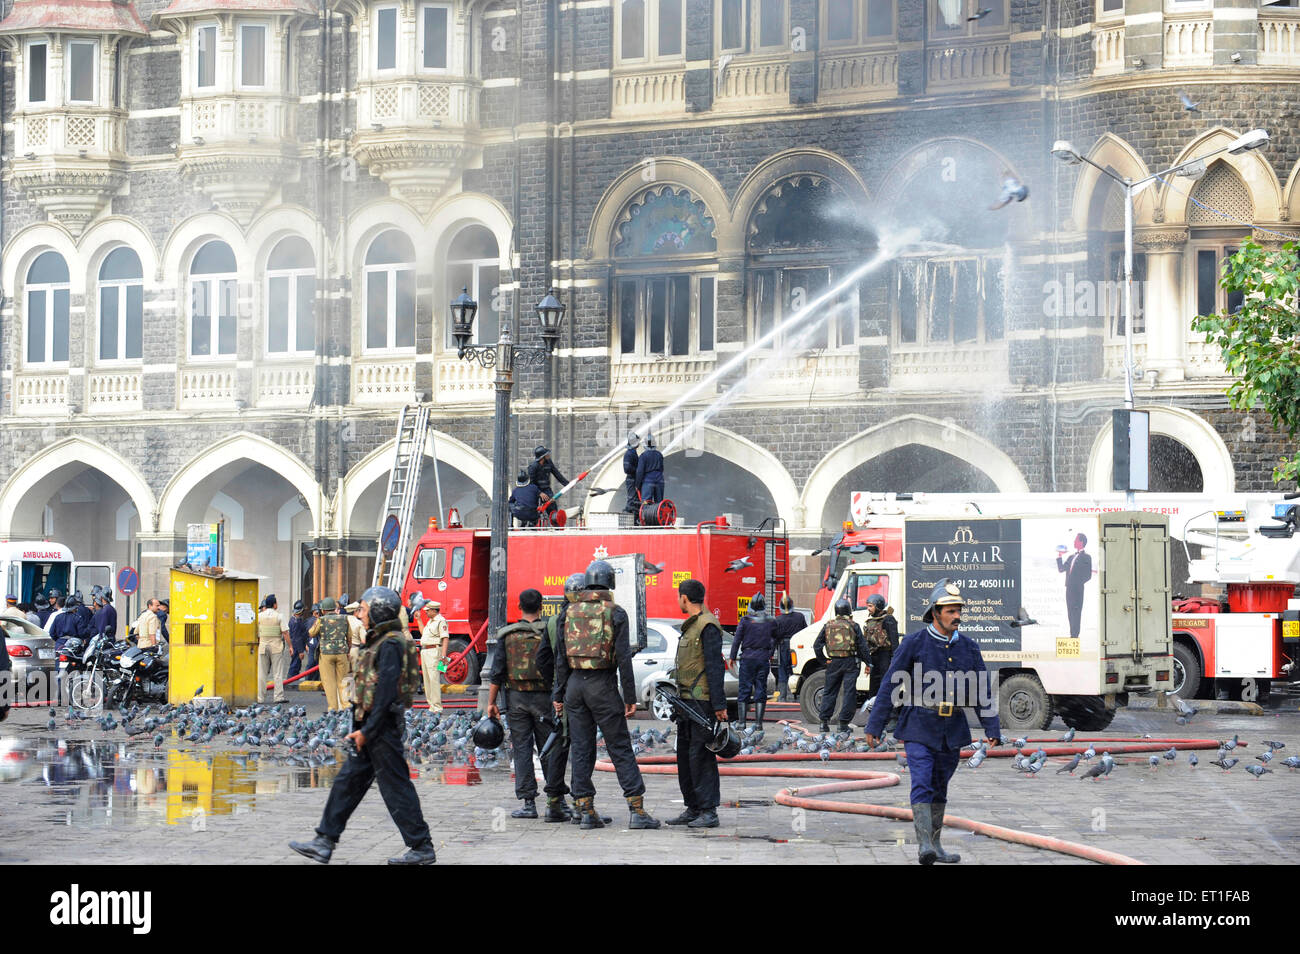 Fire Brigade trying extinguish fire Taj Mahal hotel ; after Terrorist attack by Deccan Mujahedeen on 26 November - Stock Image